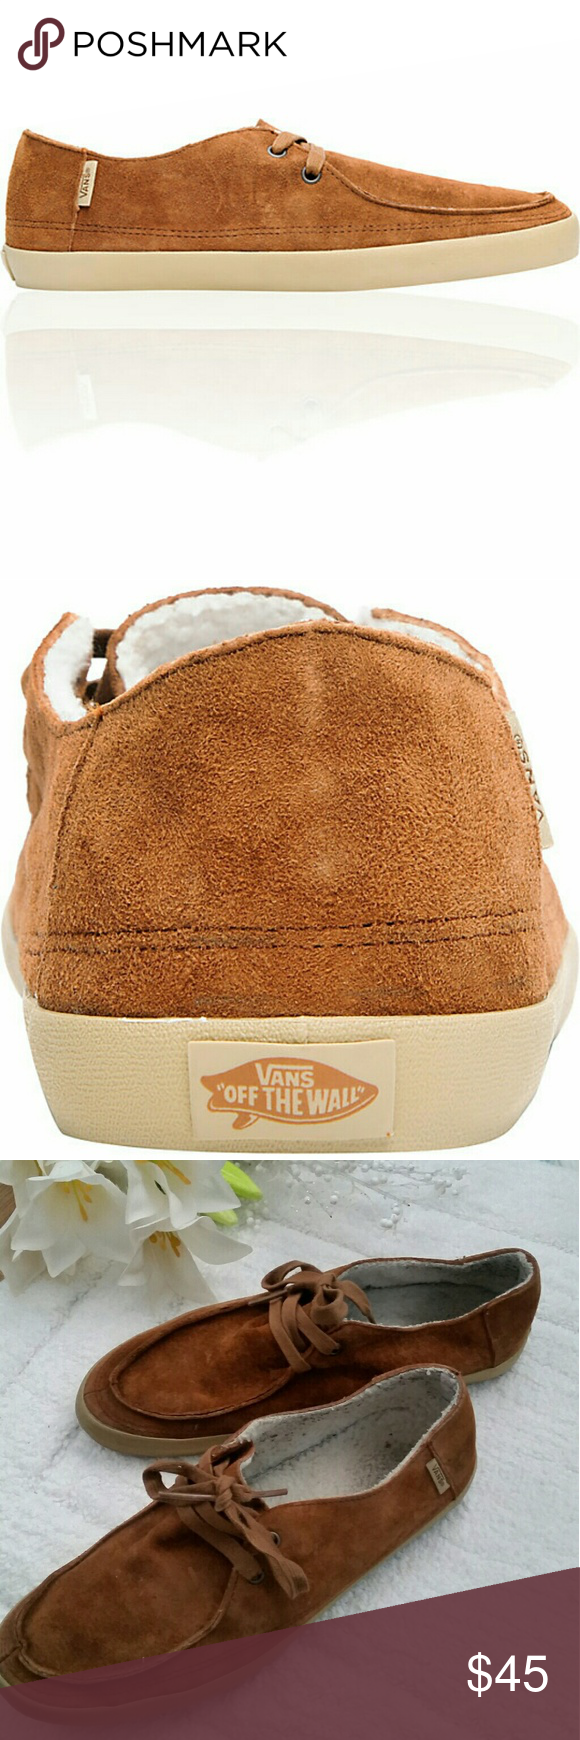 fa2cabc416d  Vans Brown Suede Sneakers  Vans Rata Vulc shoe. Brown suede upper. Fleece  lined inside. Vanslite footbed. Vulc gum rubber outsole. Made with  eco-conscious ...